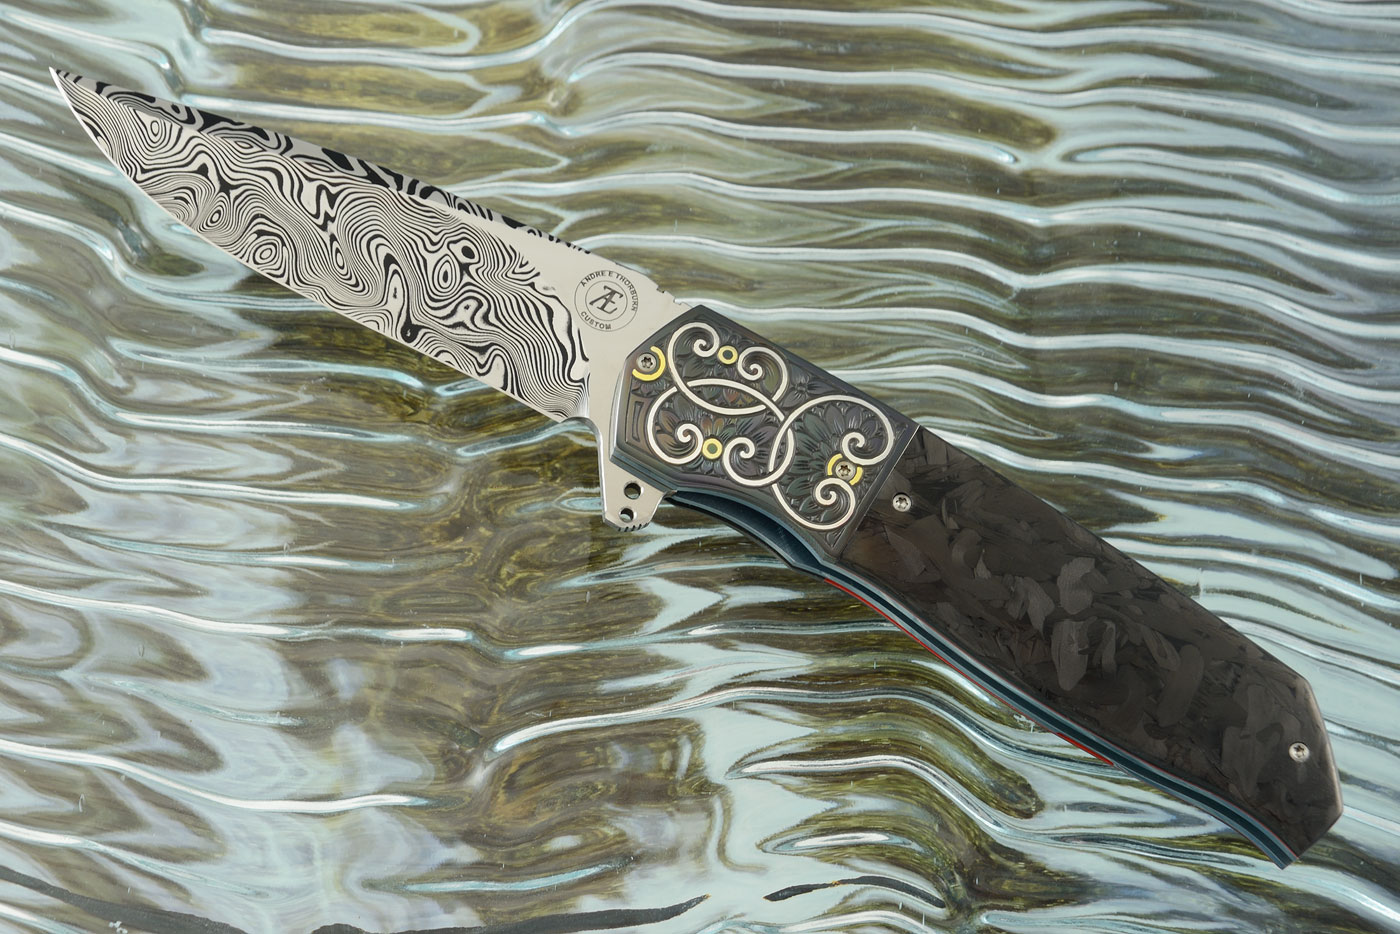 L36S Flipper with Marbled Carbon Fiber, Zirconium, and Damasteel - Engraved with Silver and Gold Inlay (Ceramic IKBS)